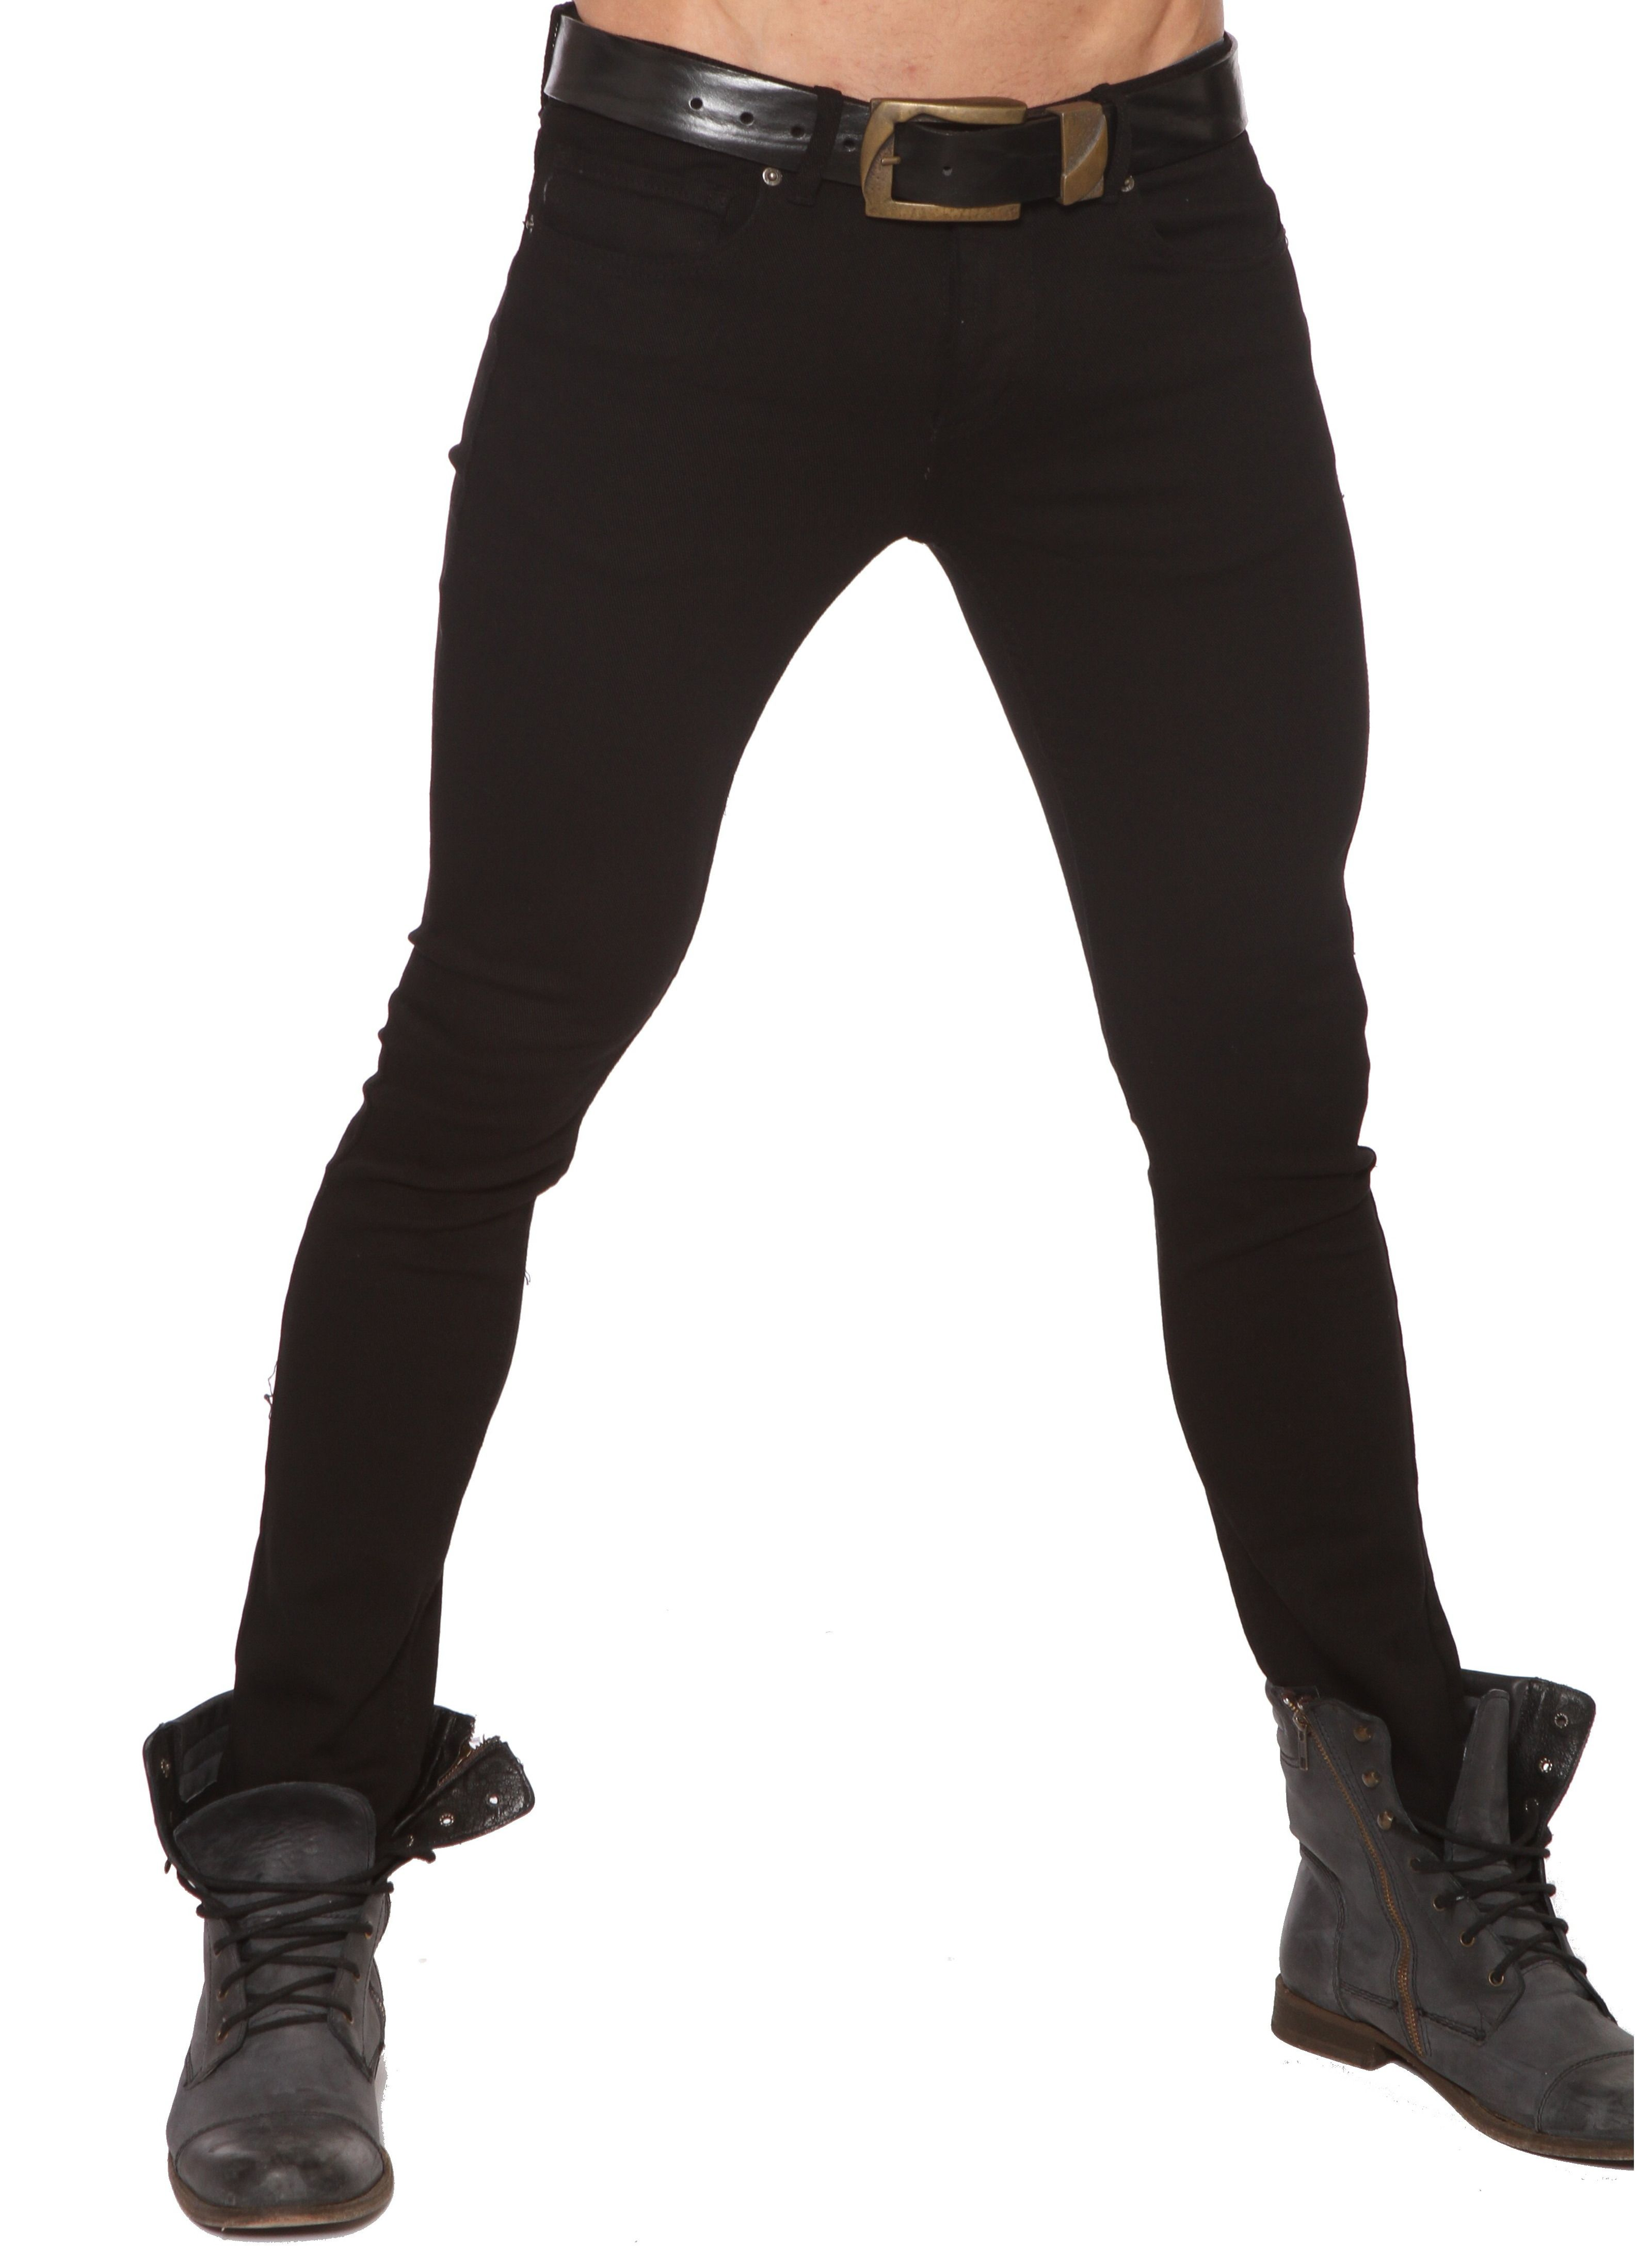 27c0244126c210 Lip Service Mens Pegged Tight Black Jeans Junkie Style Jeans ...